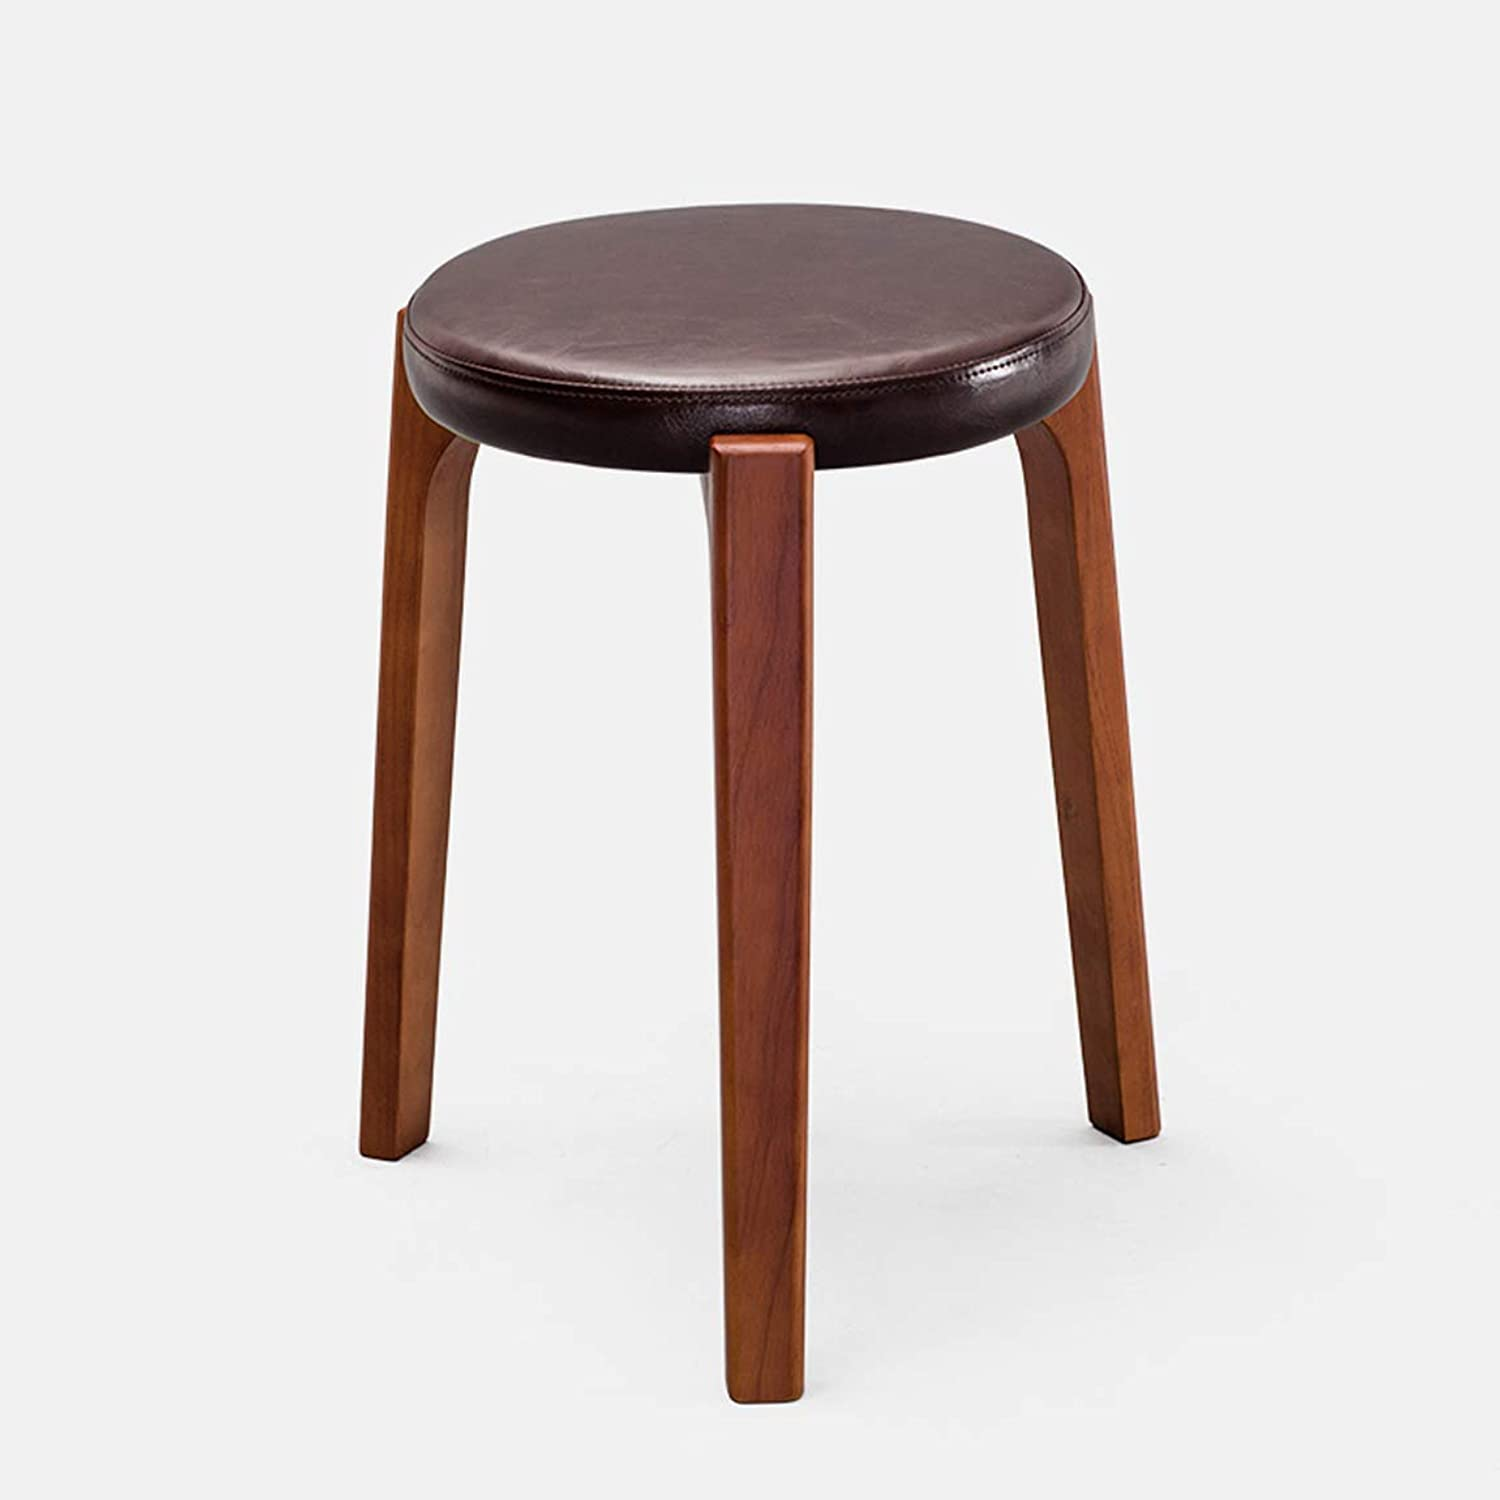 HLQW Creative Small Stool, Solid Wooden Dining Stool, Square Stool, Dressing Stool, Simple Fashionable Dressing Stool, Bench, Household Stool, Brown Leg 5